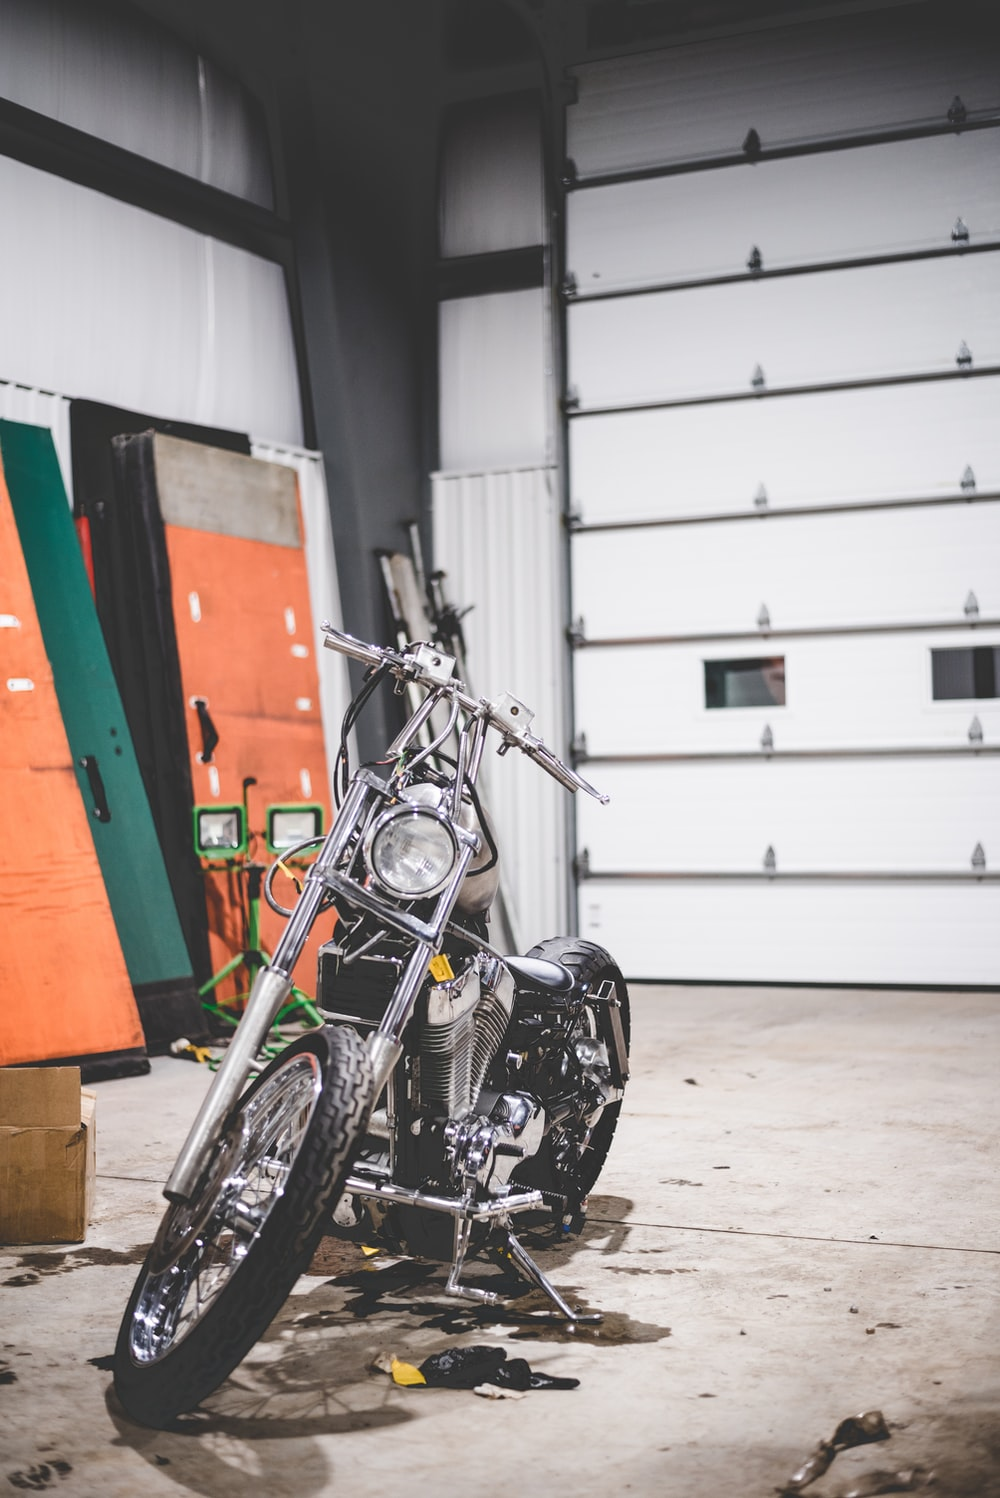 black motorcycle parked beside orange and white wall